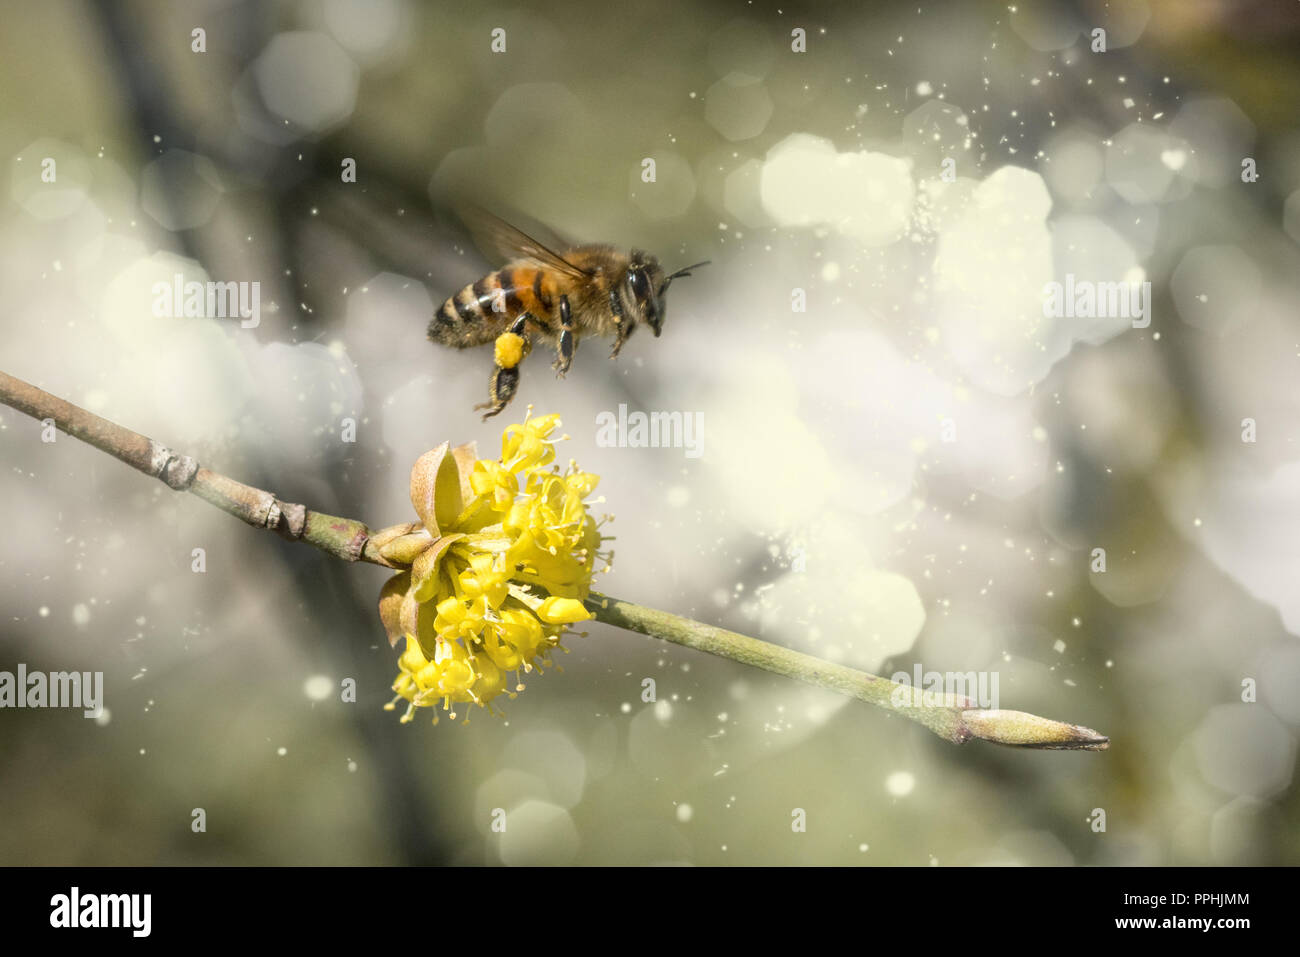 hardworking bee collects nectar, blossom with background - Stock Image